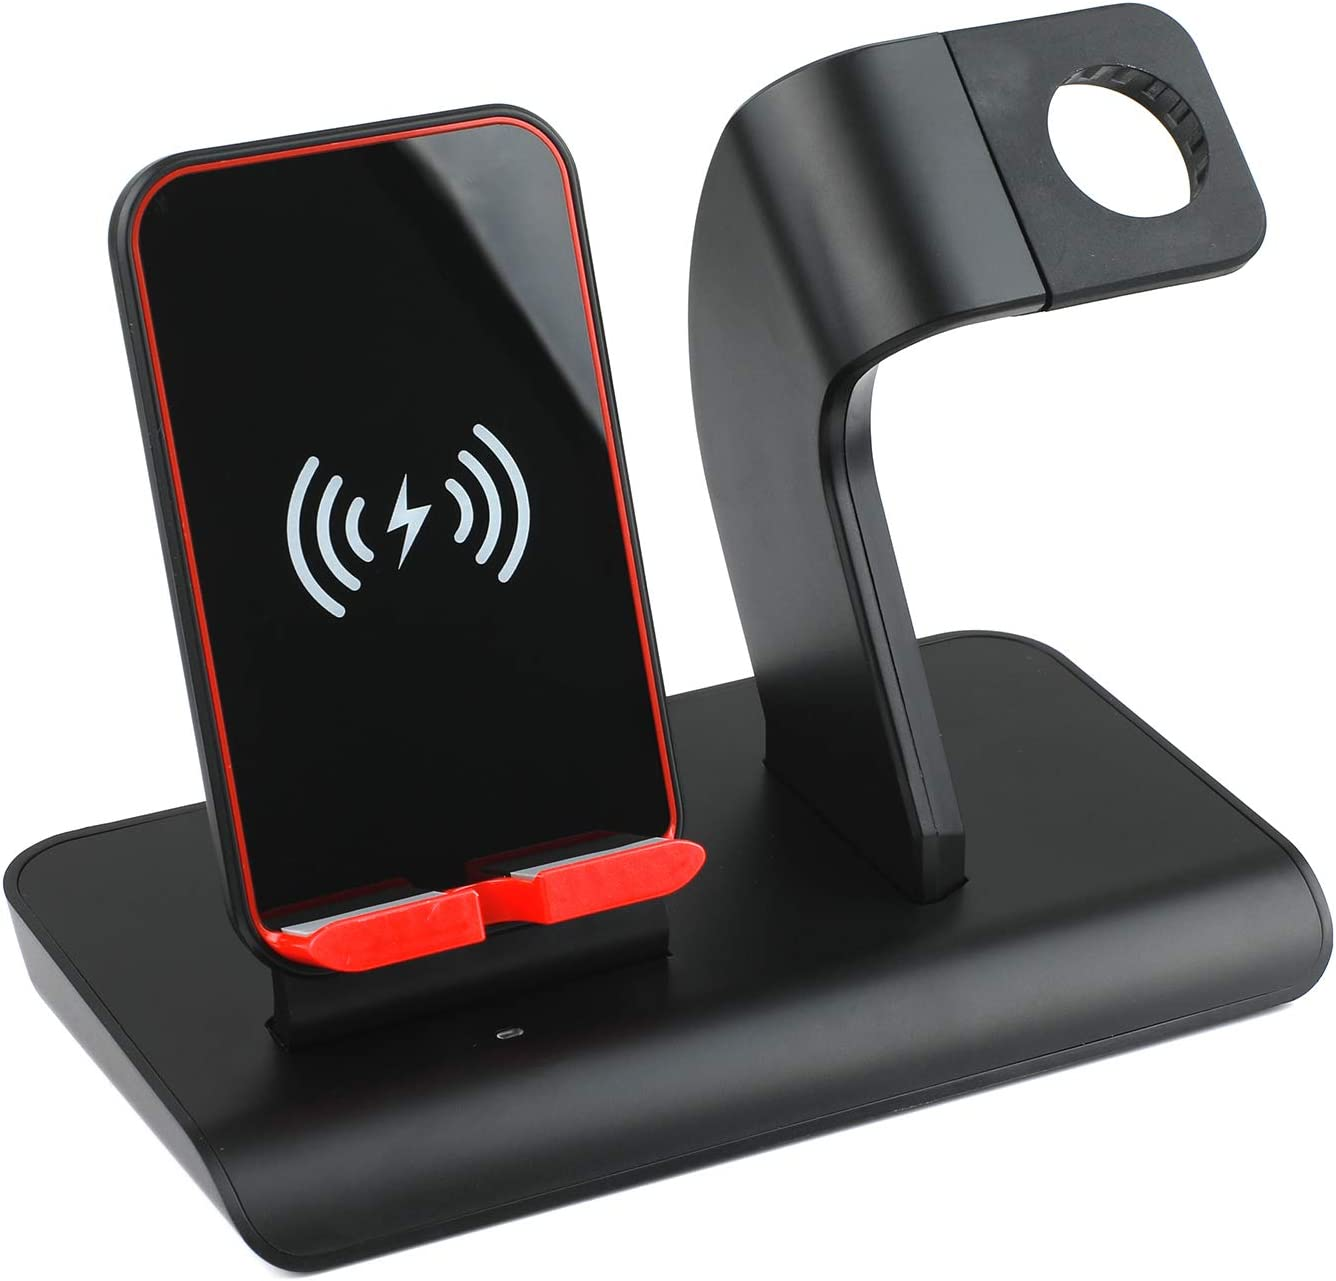 Co-Goldguard Wireless Charging Stand 2 in 1 Charger Station for iPhone Charging Stand Holder for iWatch Series 1 2 3 iPhone X XS MAX 8 Plus Black Red